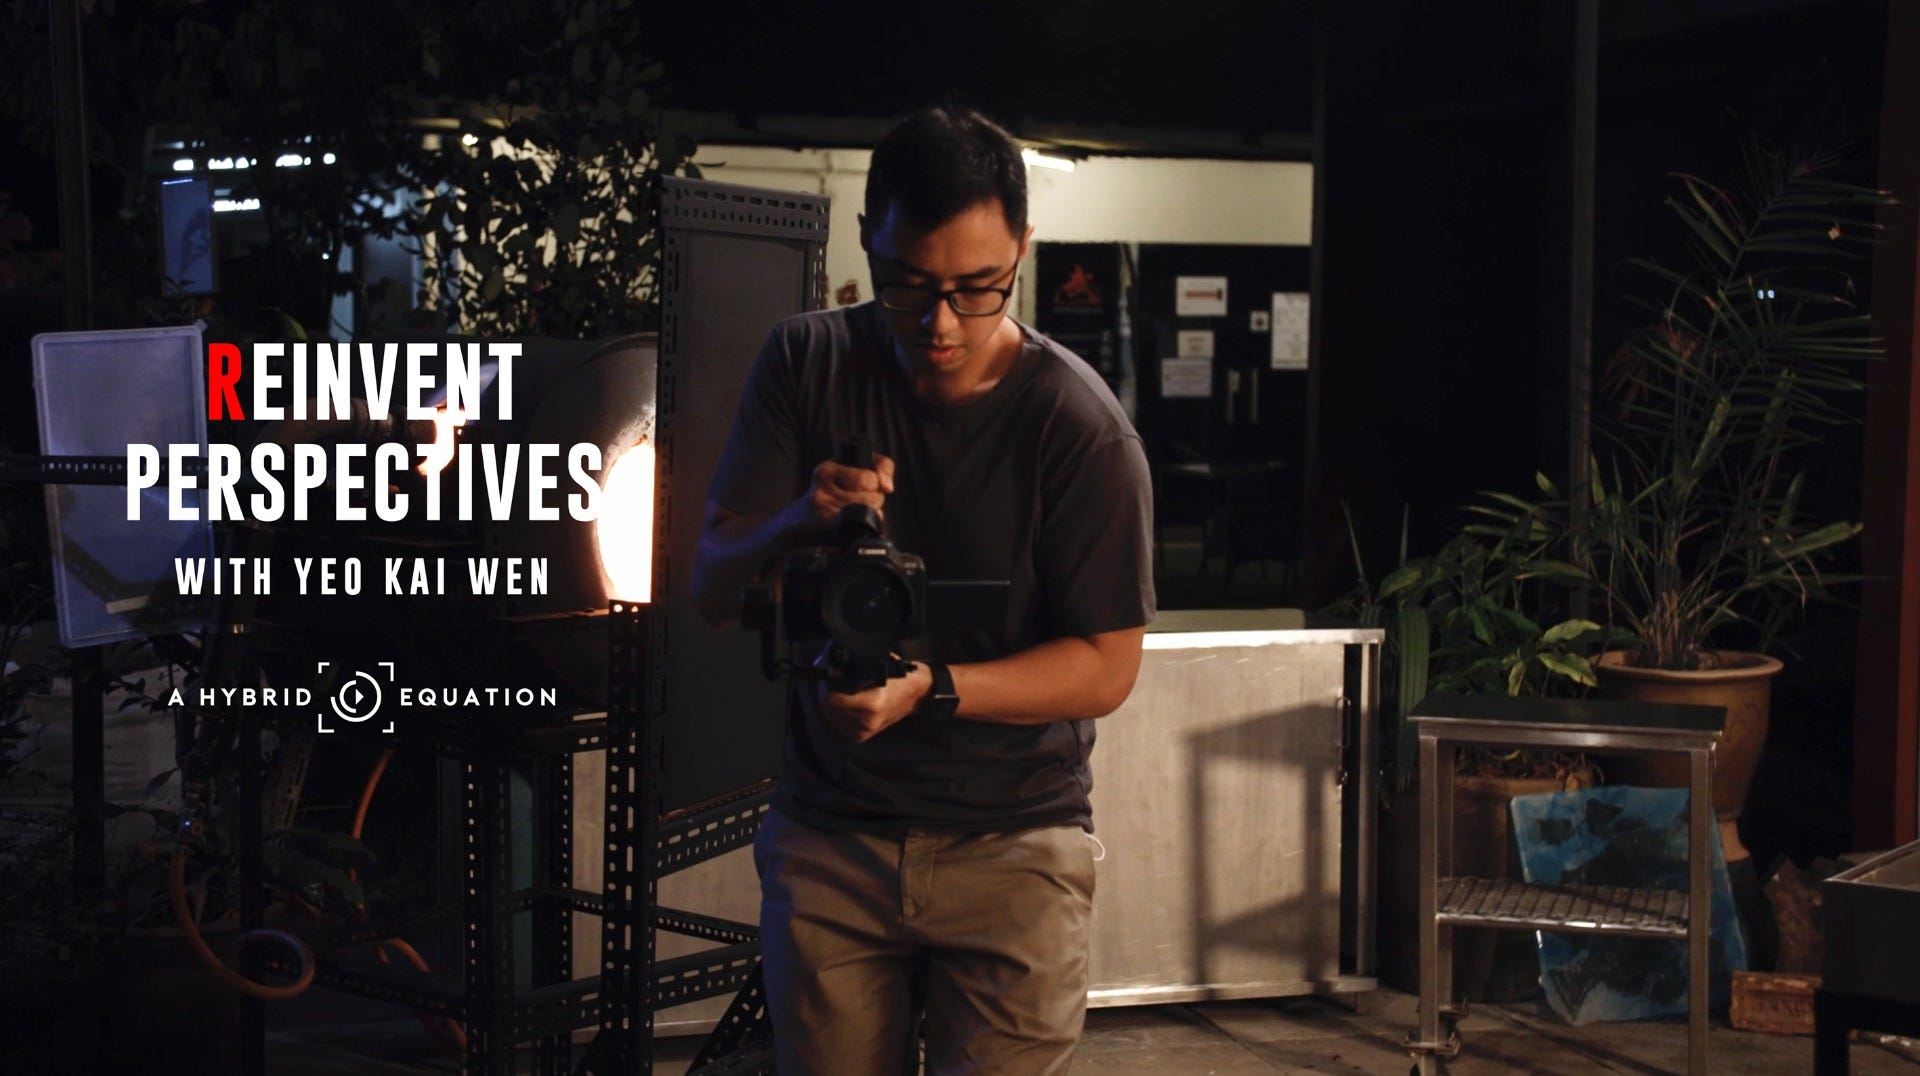 Reinvent Perspectives with Yeo Kai Wen